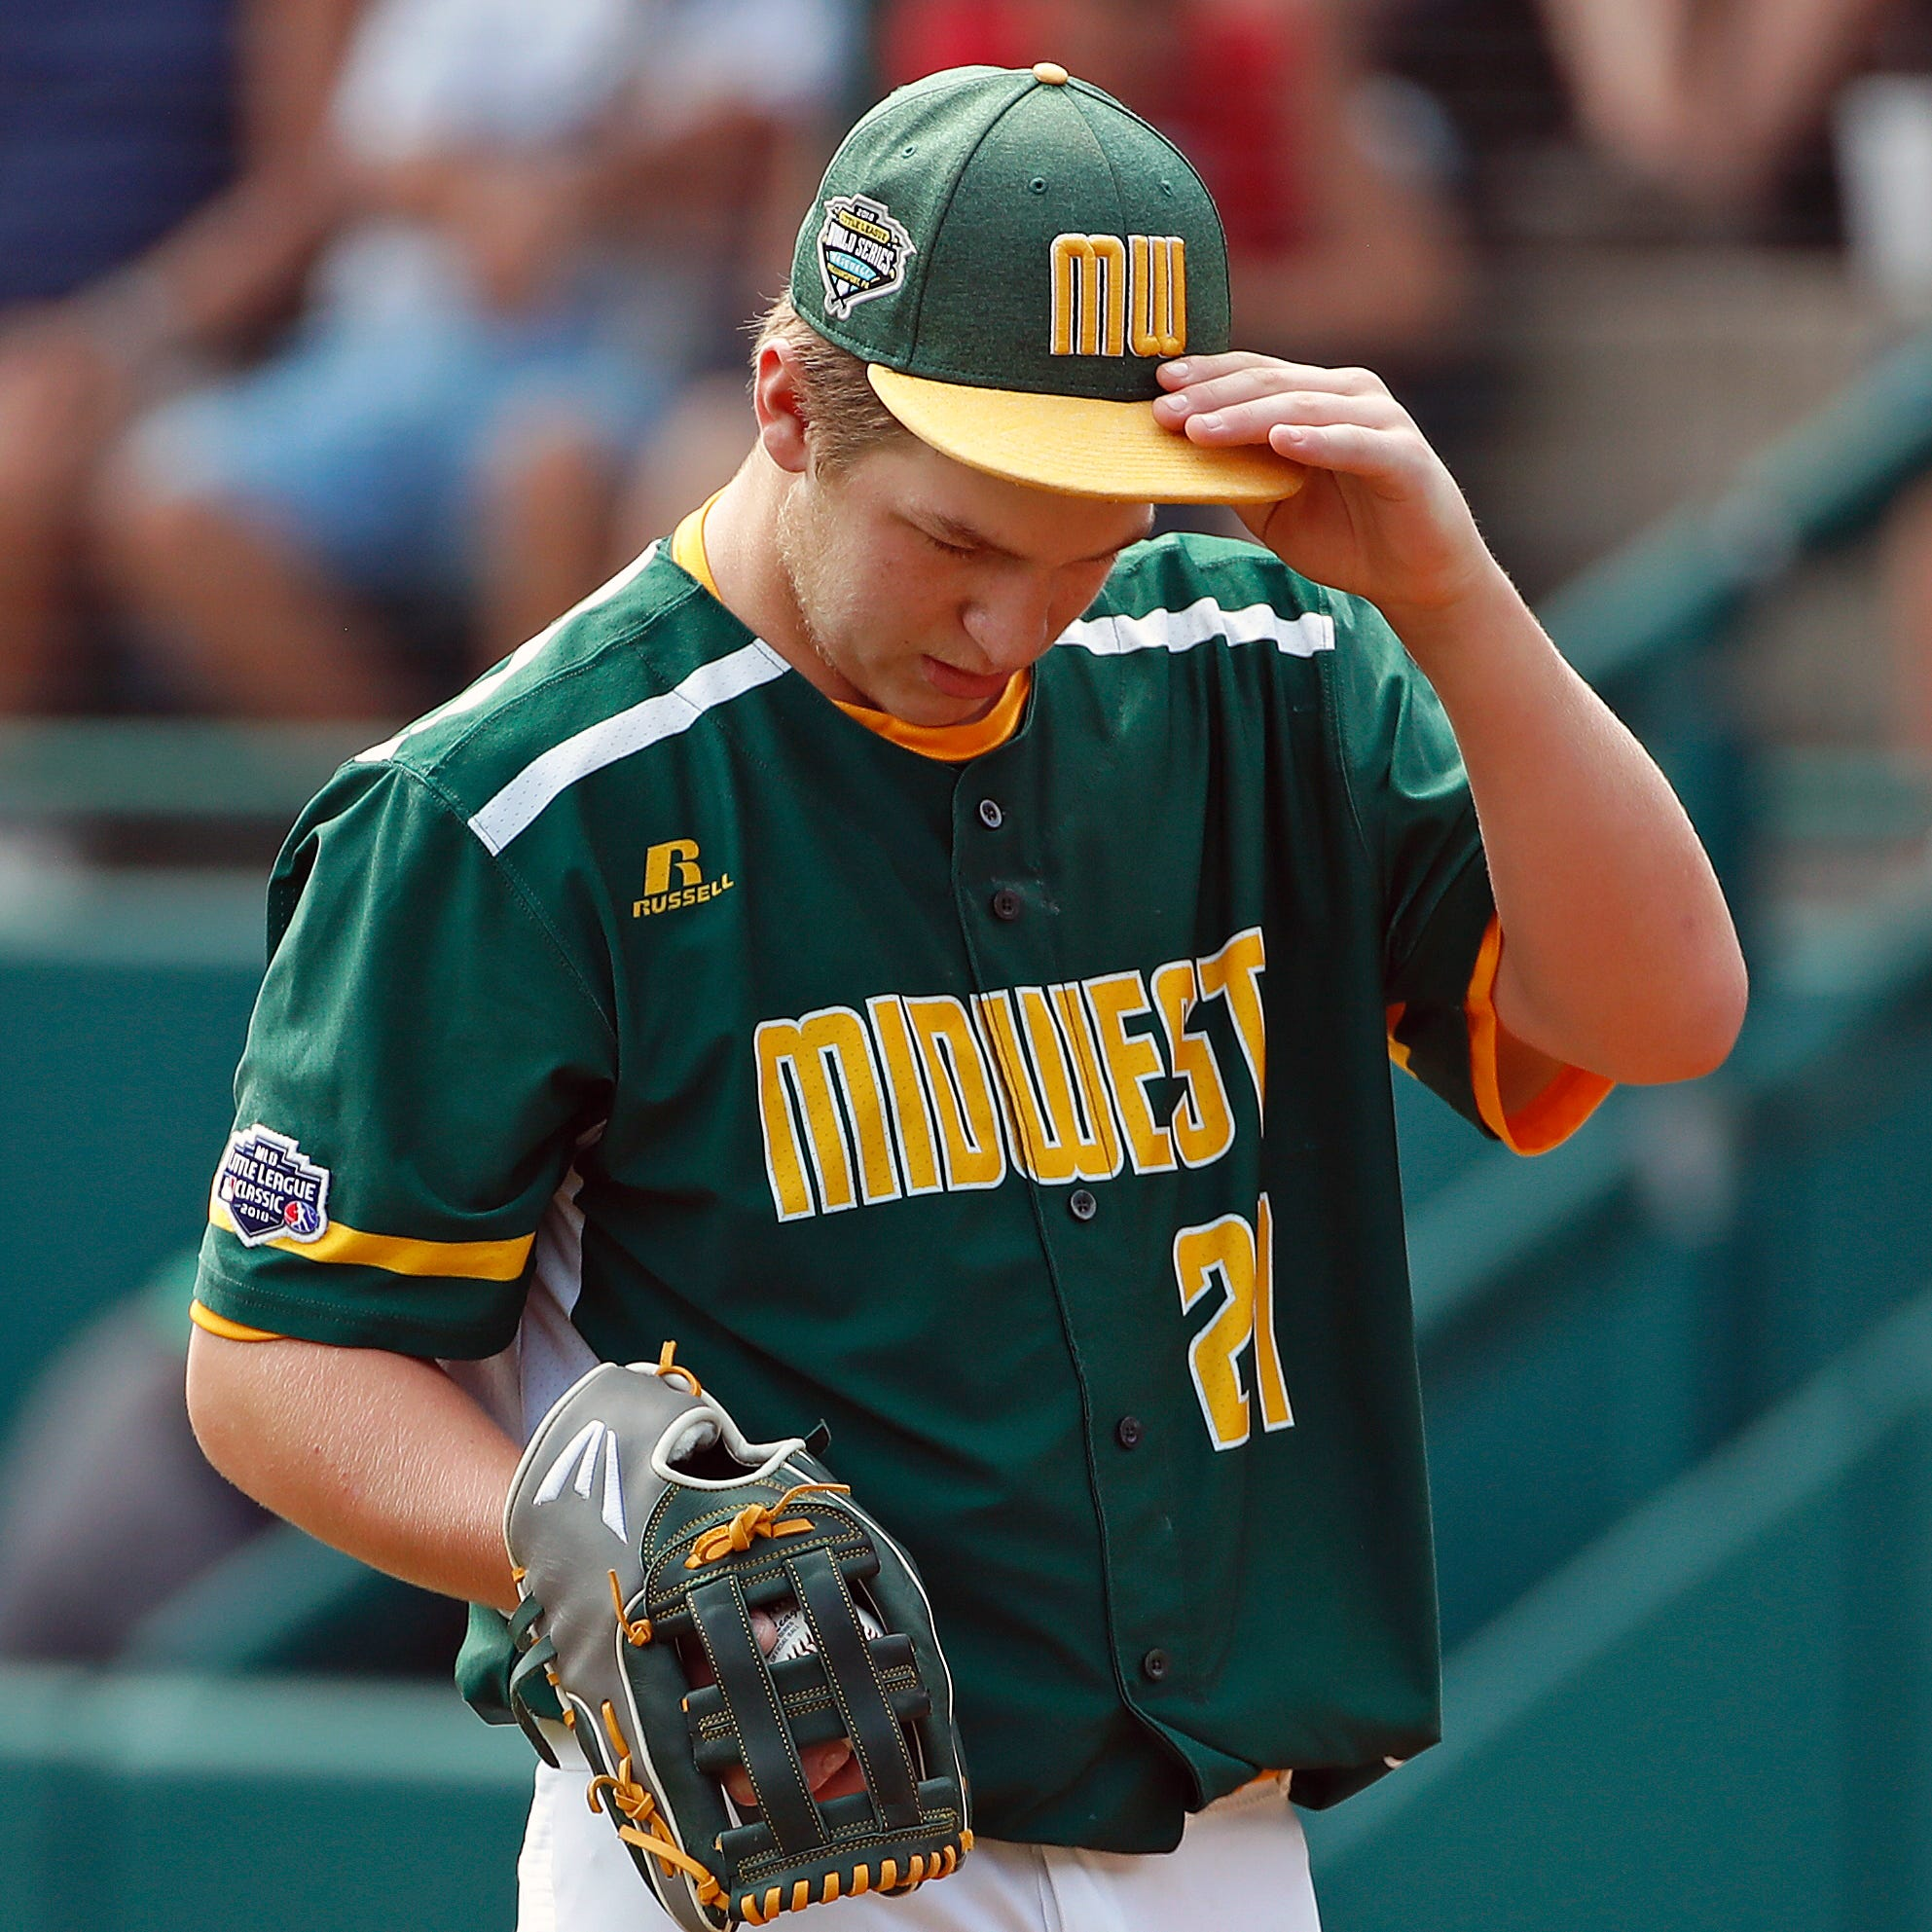 Little League World Series: Iowa's Grandview hangs tough, falls to New York in opener